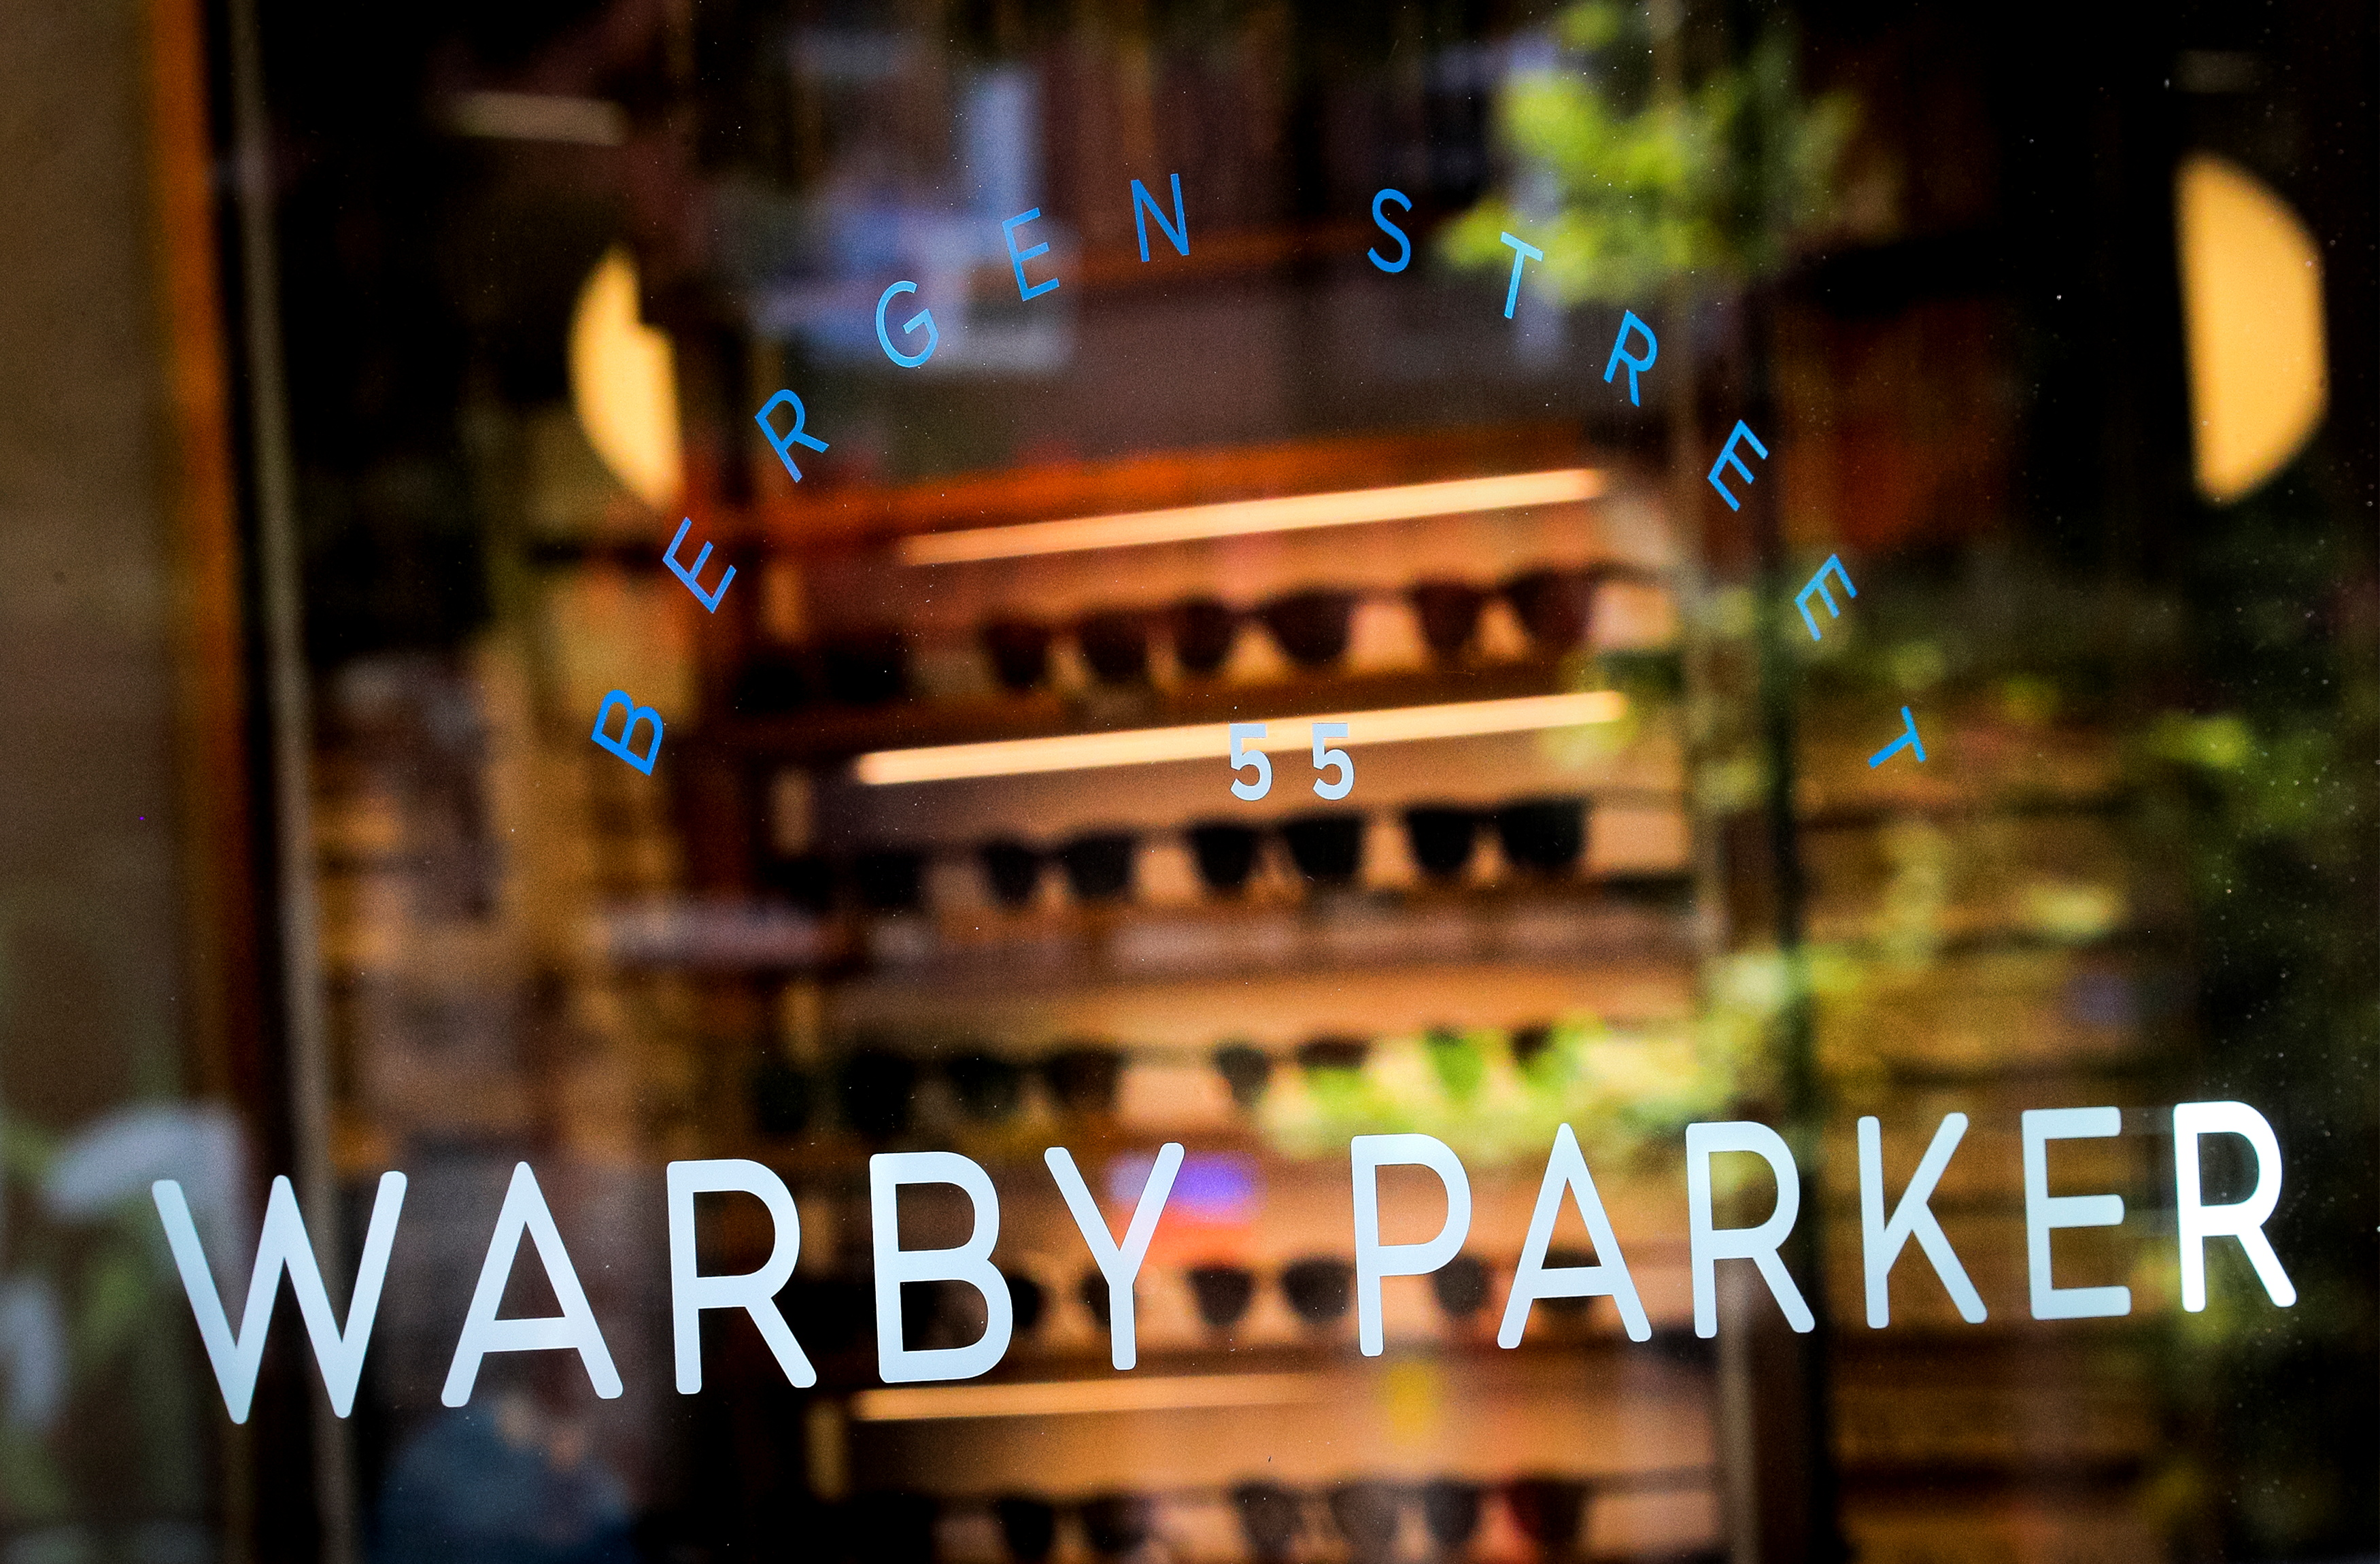 A sign is seen on the door of a Warby Parker store in Brooklyn, New York, U.S., June 24, 2021.  REUTERS/Brendan McDermid